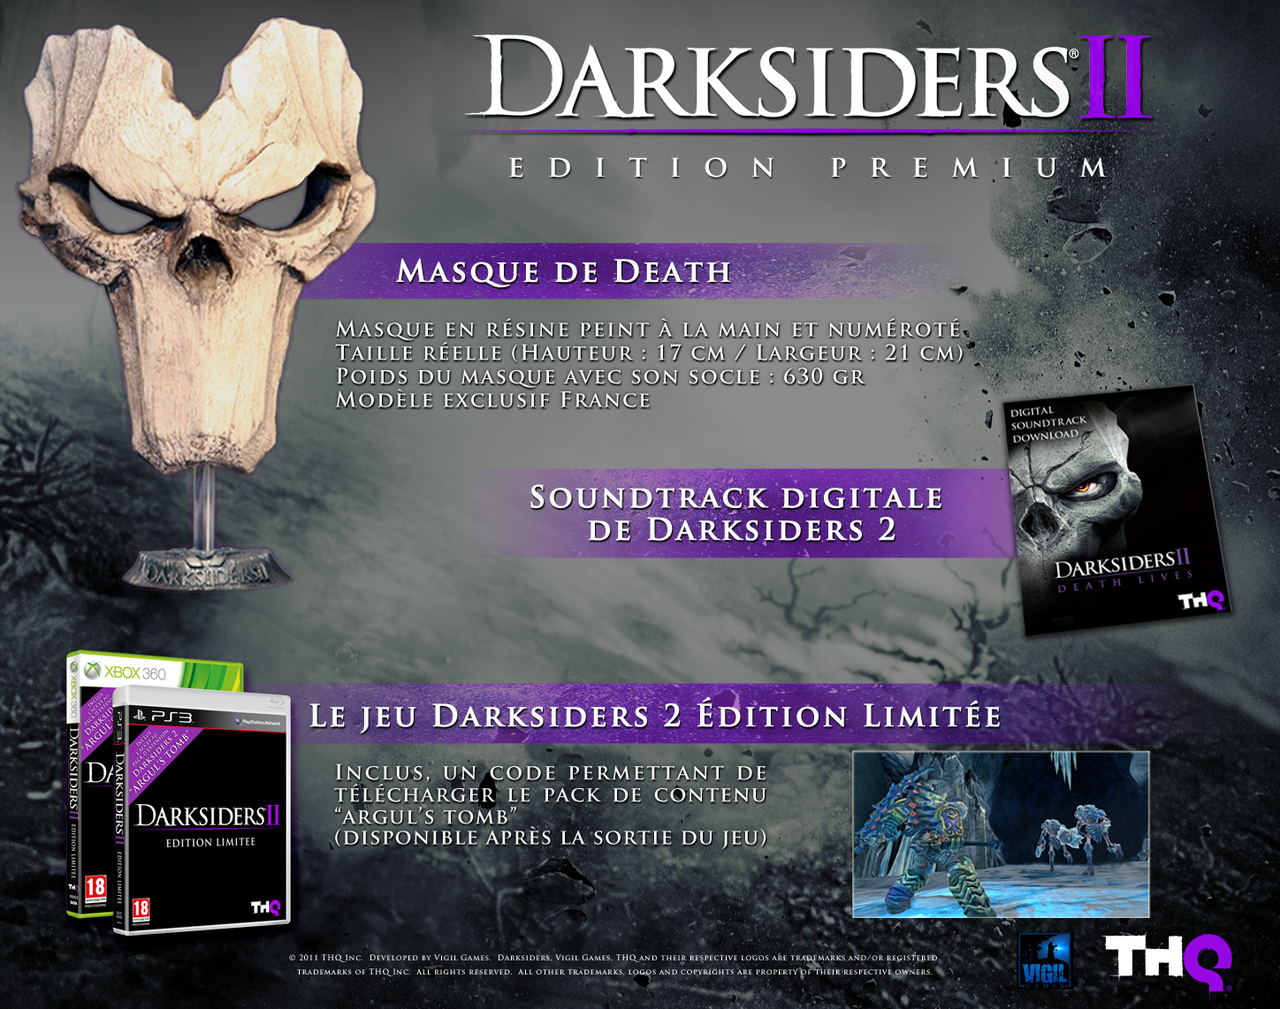 darksiders2_edition_premium.jpg